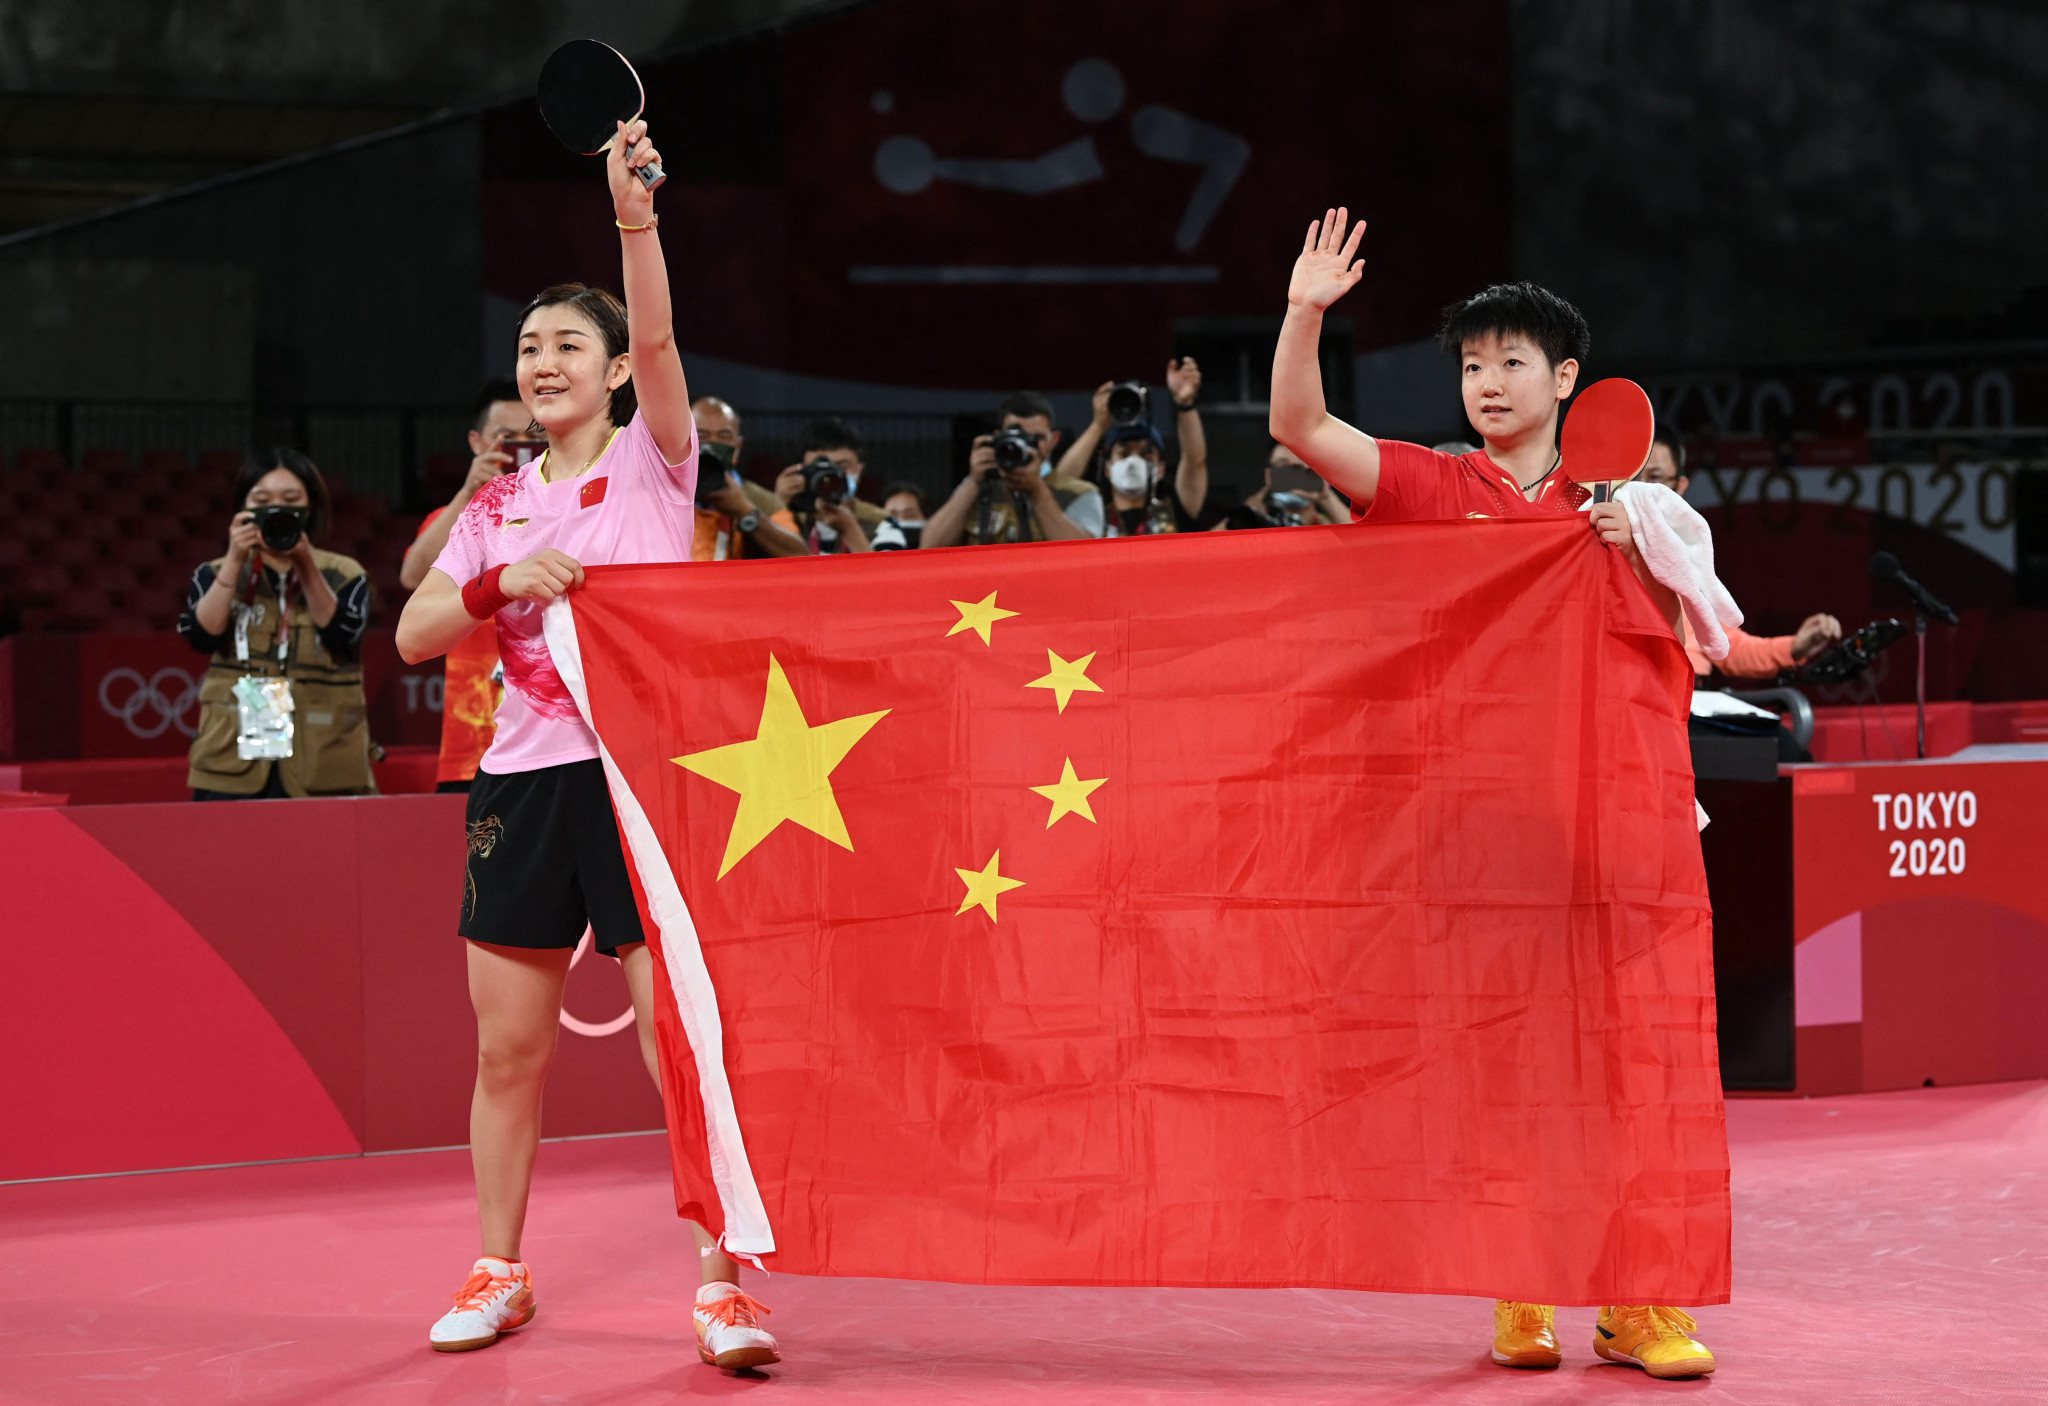 Chen Meng, left, defeated Sun Yingsha to win gold as the top seed ©Getty Images